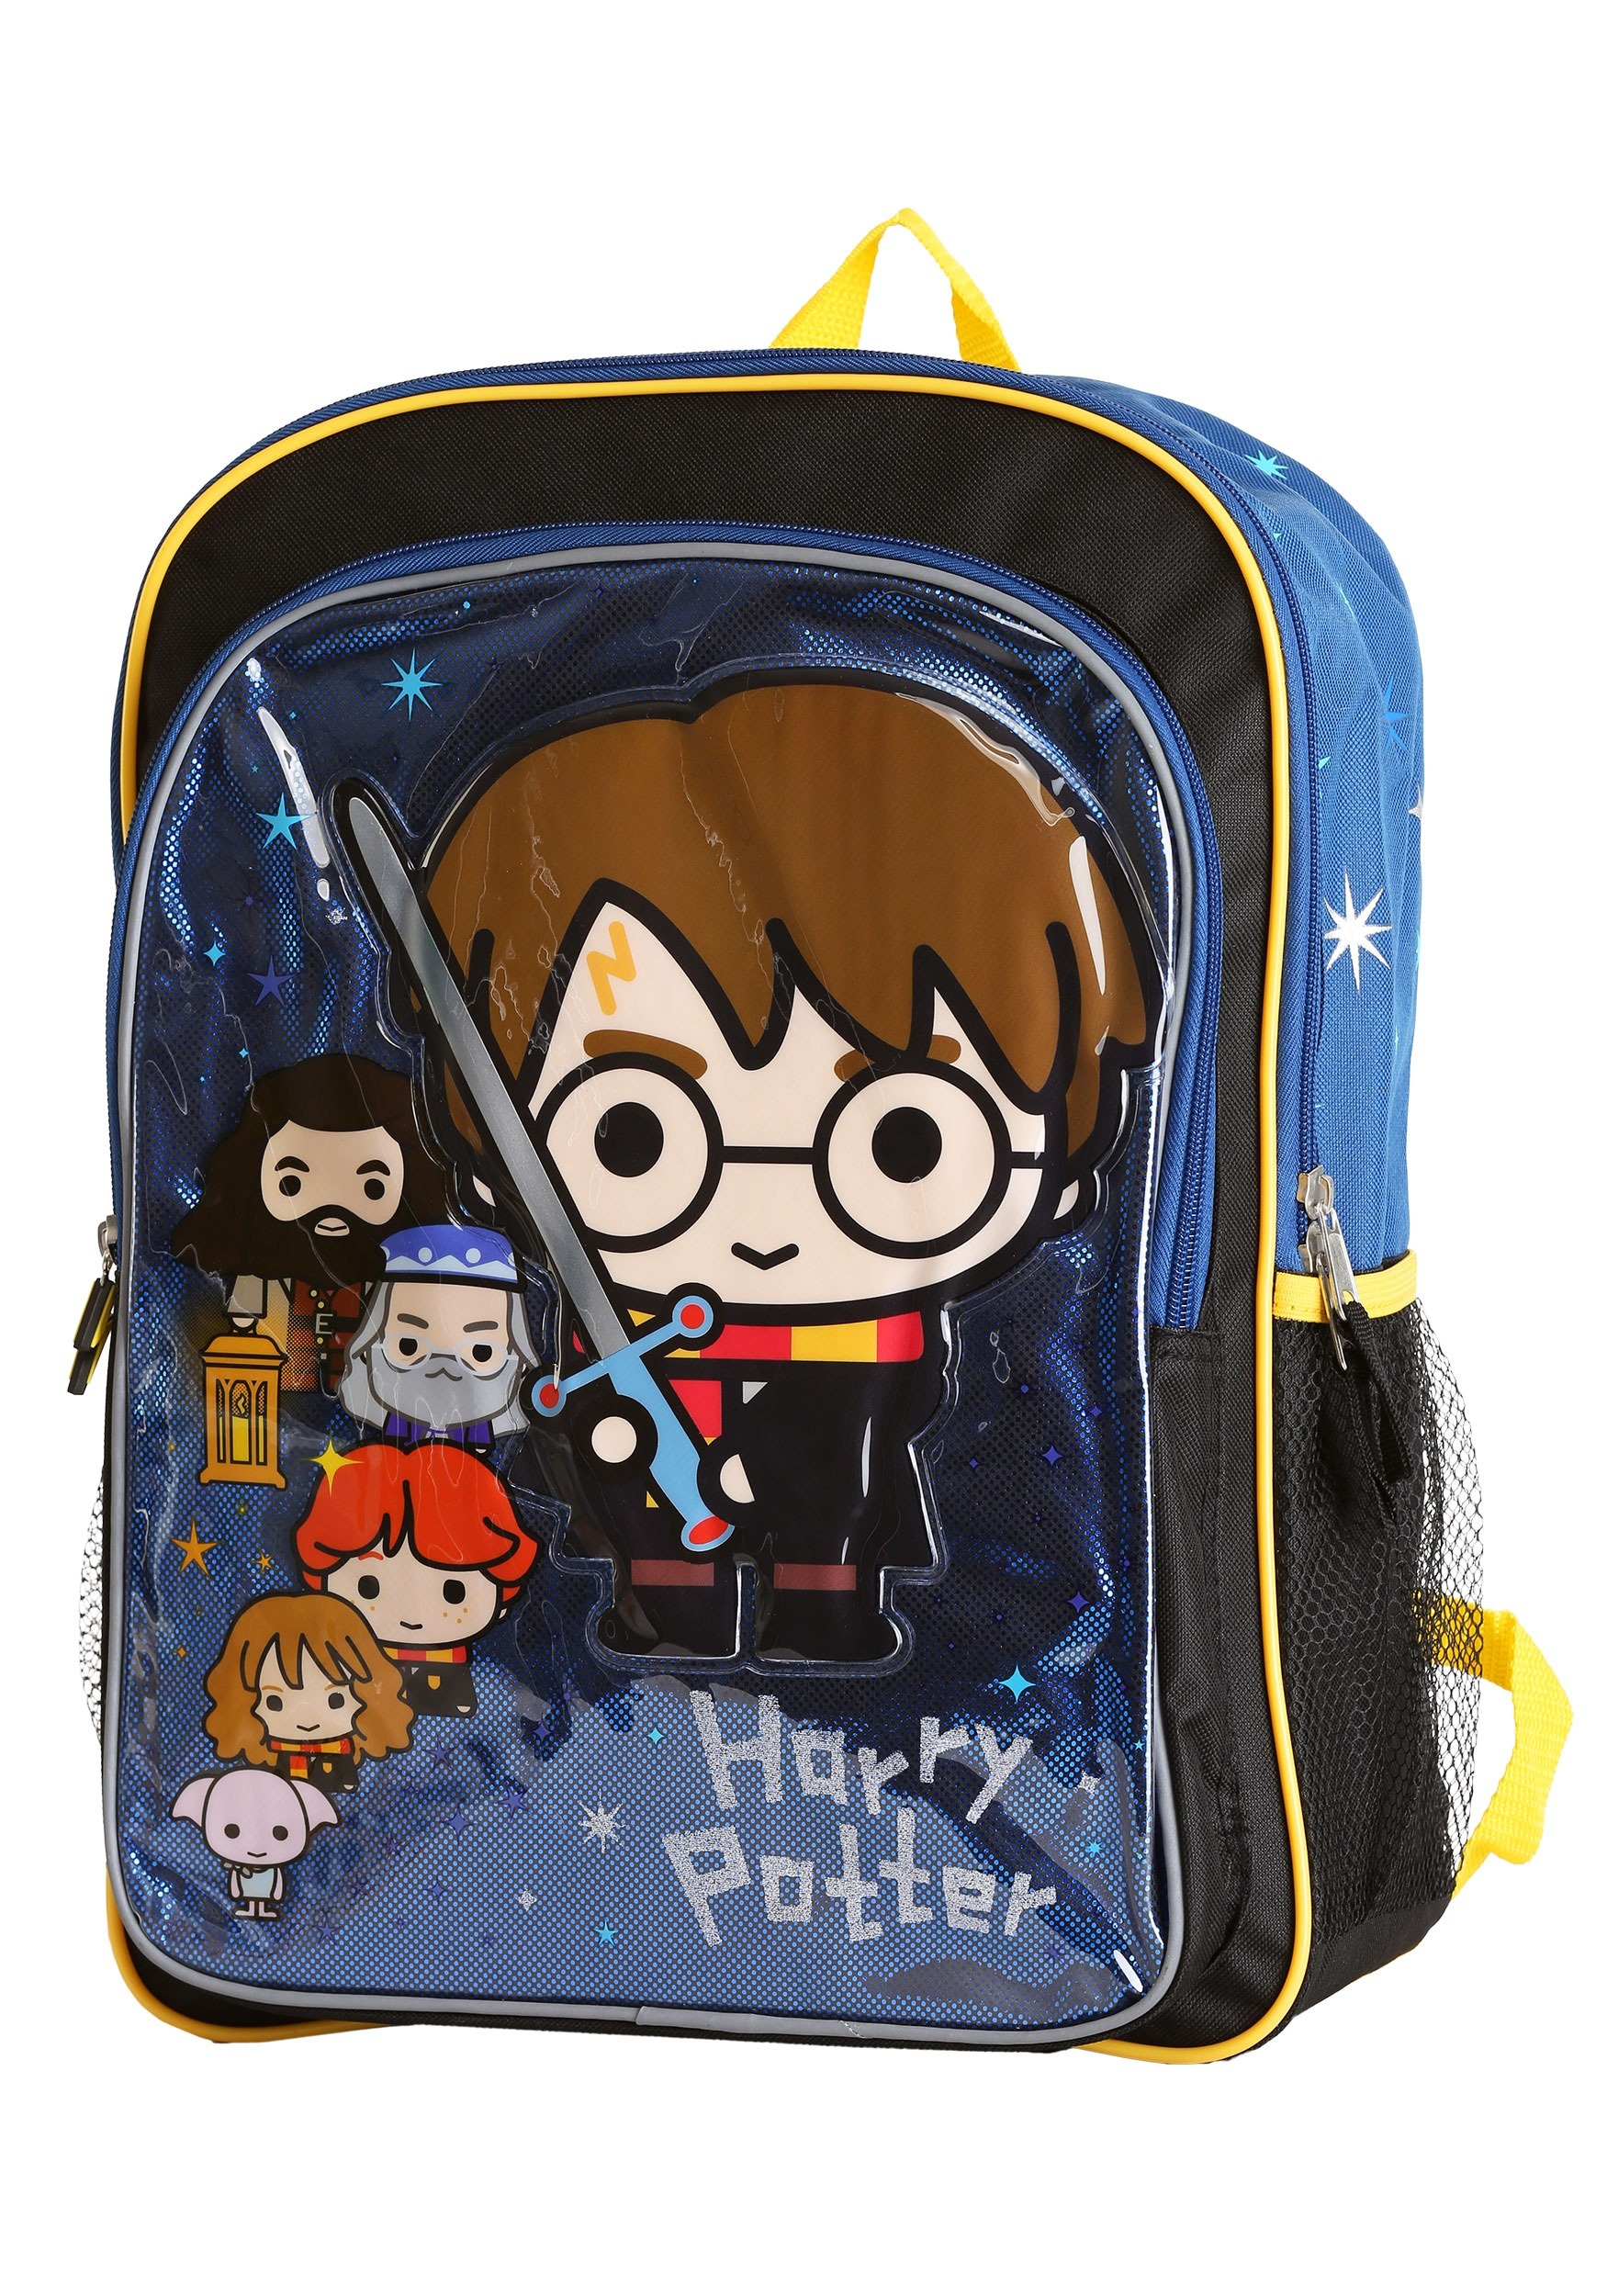 2de33d0450d2 Kids Harry Potter Chibi 16